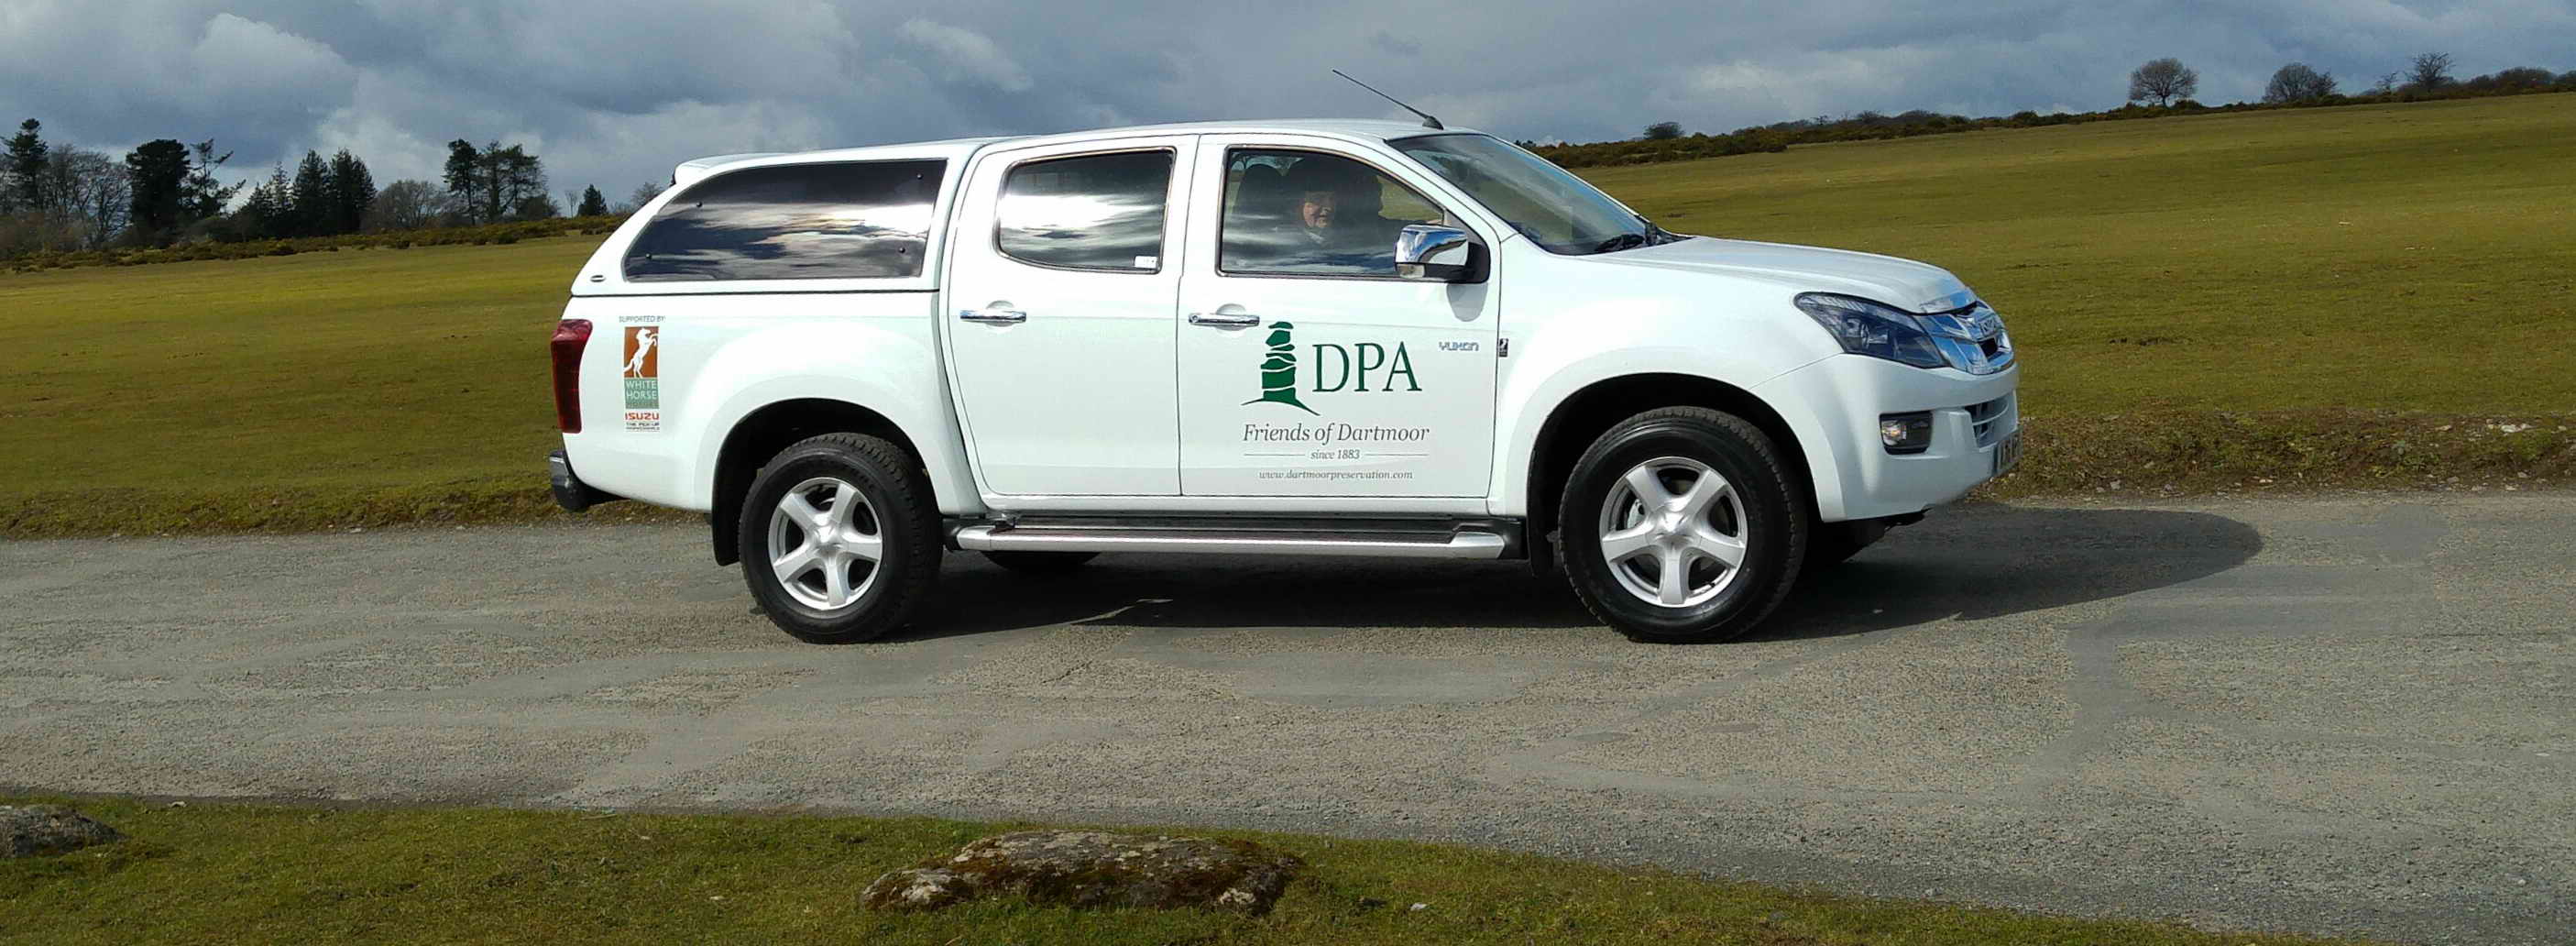 The DPA vehicle on Roborough Down.